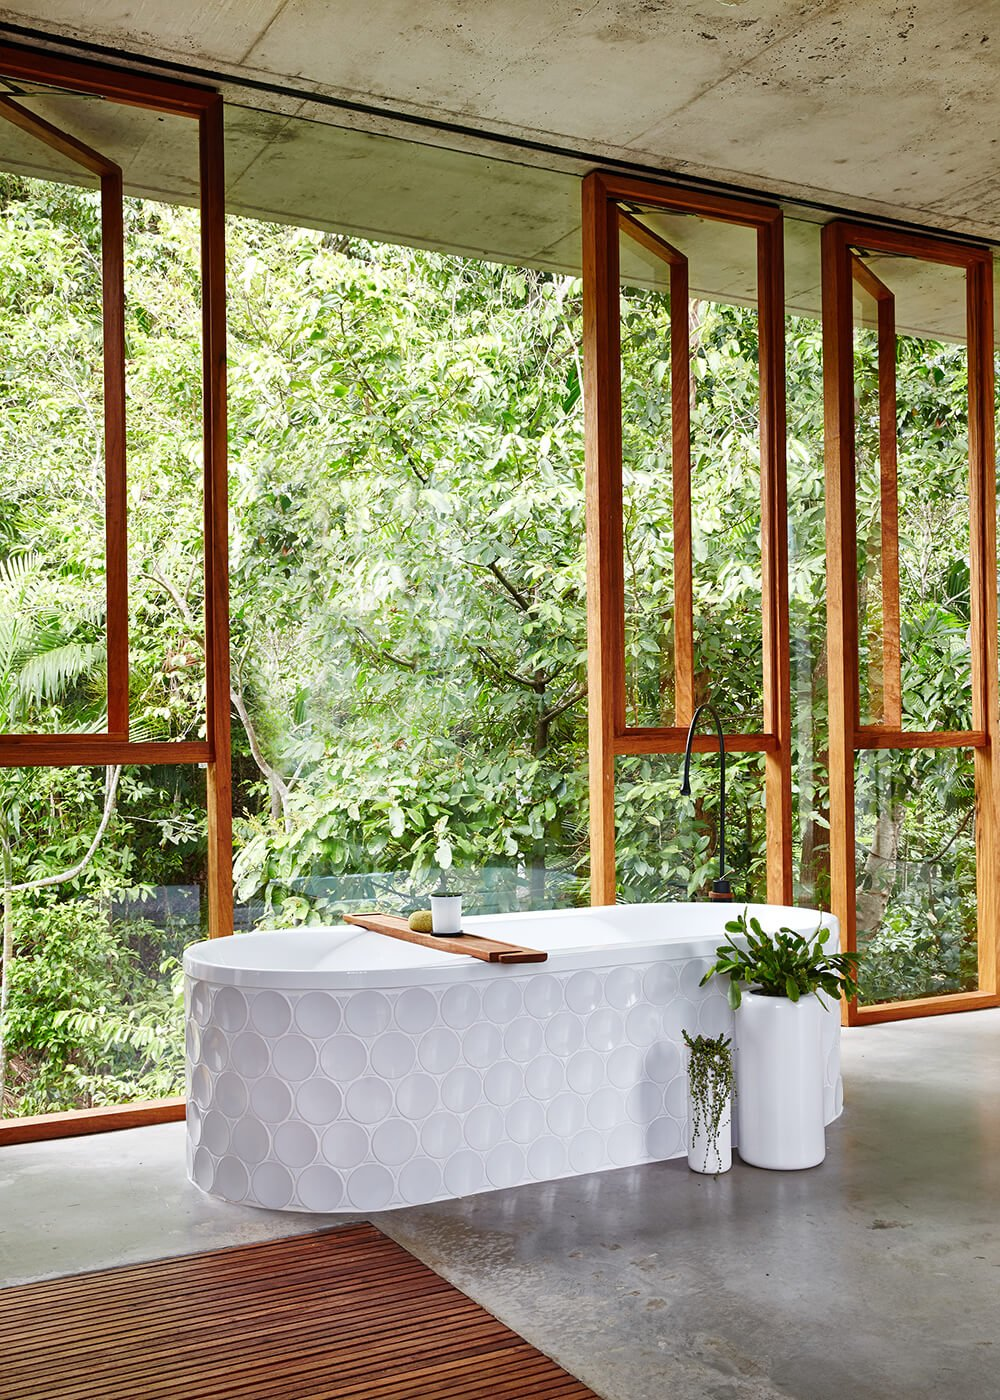 In the primary bath, we see a large soaking tub with the same circular texture as the shower wall. Basking in the glow of sunlight and rainforest views, this is one of the most relaxing bathrooms we've ever seen.